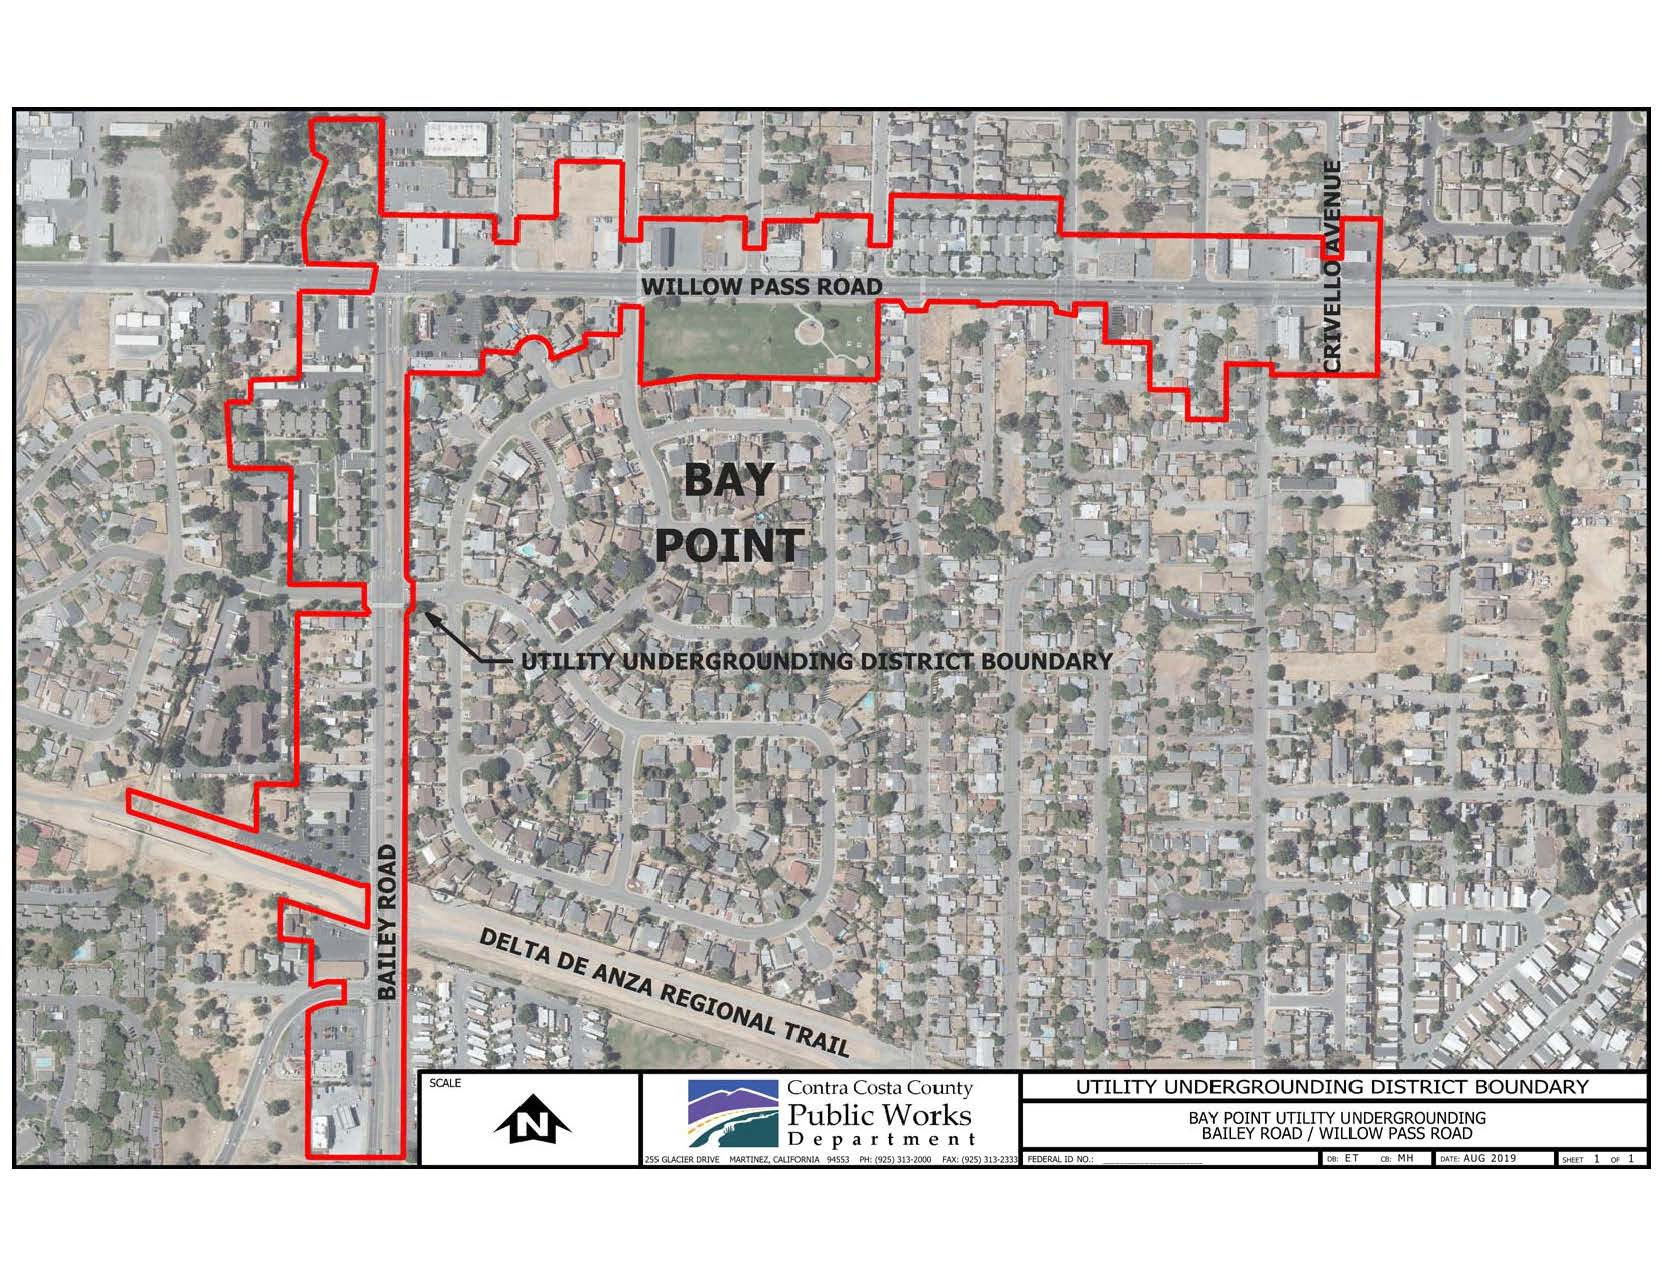 Bay Point Utility Undergrounding District Boundary (JPG)